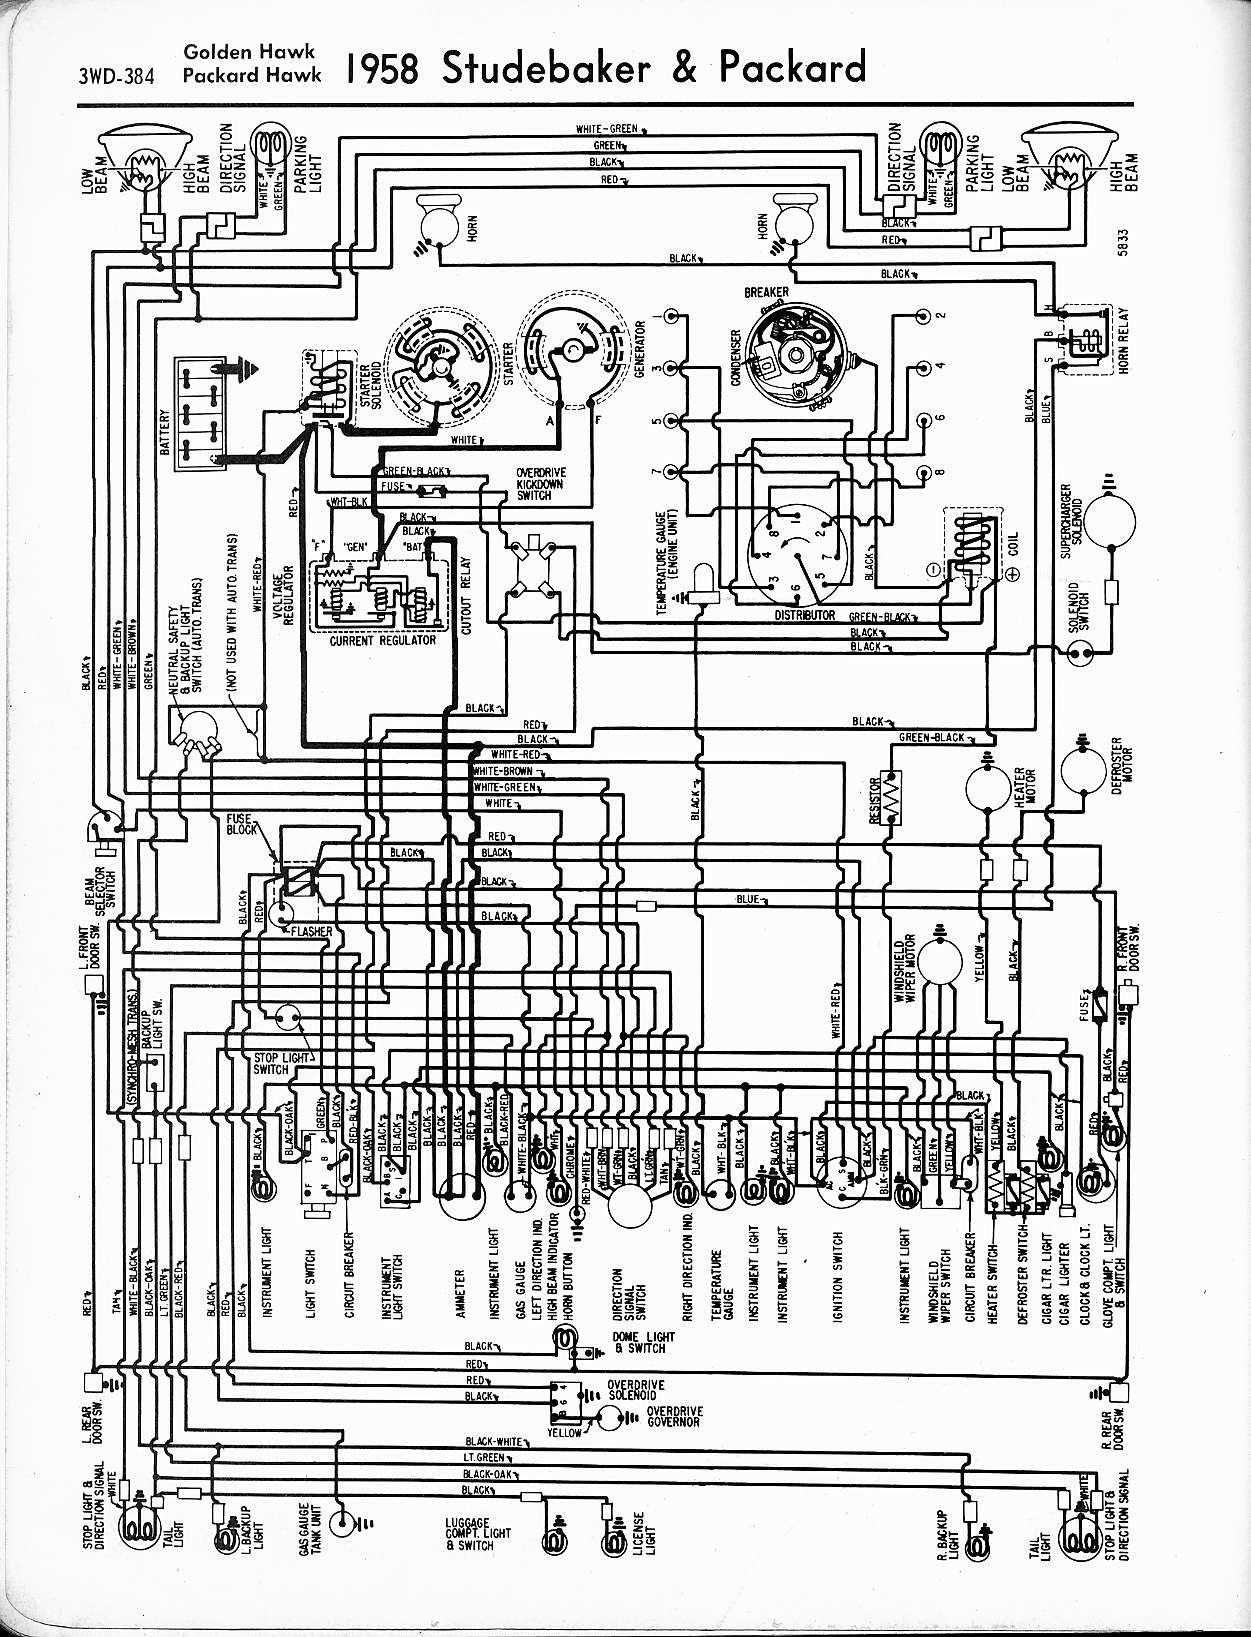 MWire5765 384 1948 packard wiring diagram on 1948 download wirning diagrams 1953 Ford Car Wiring Diagram at crackthecode.co